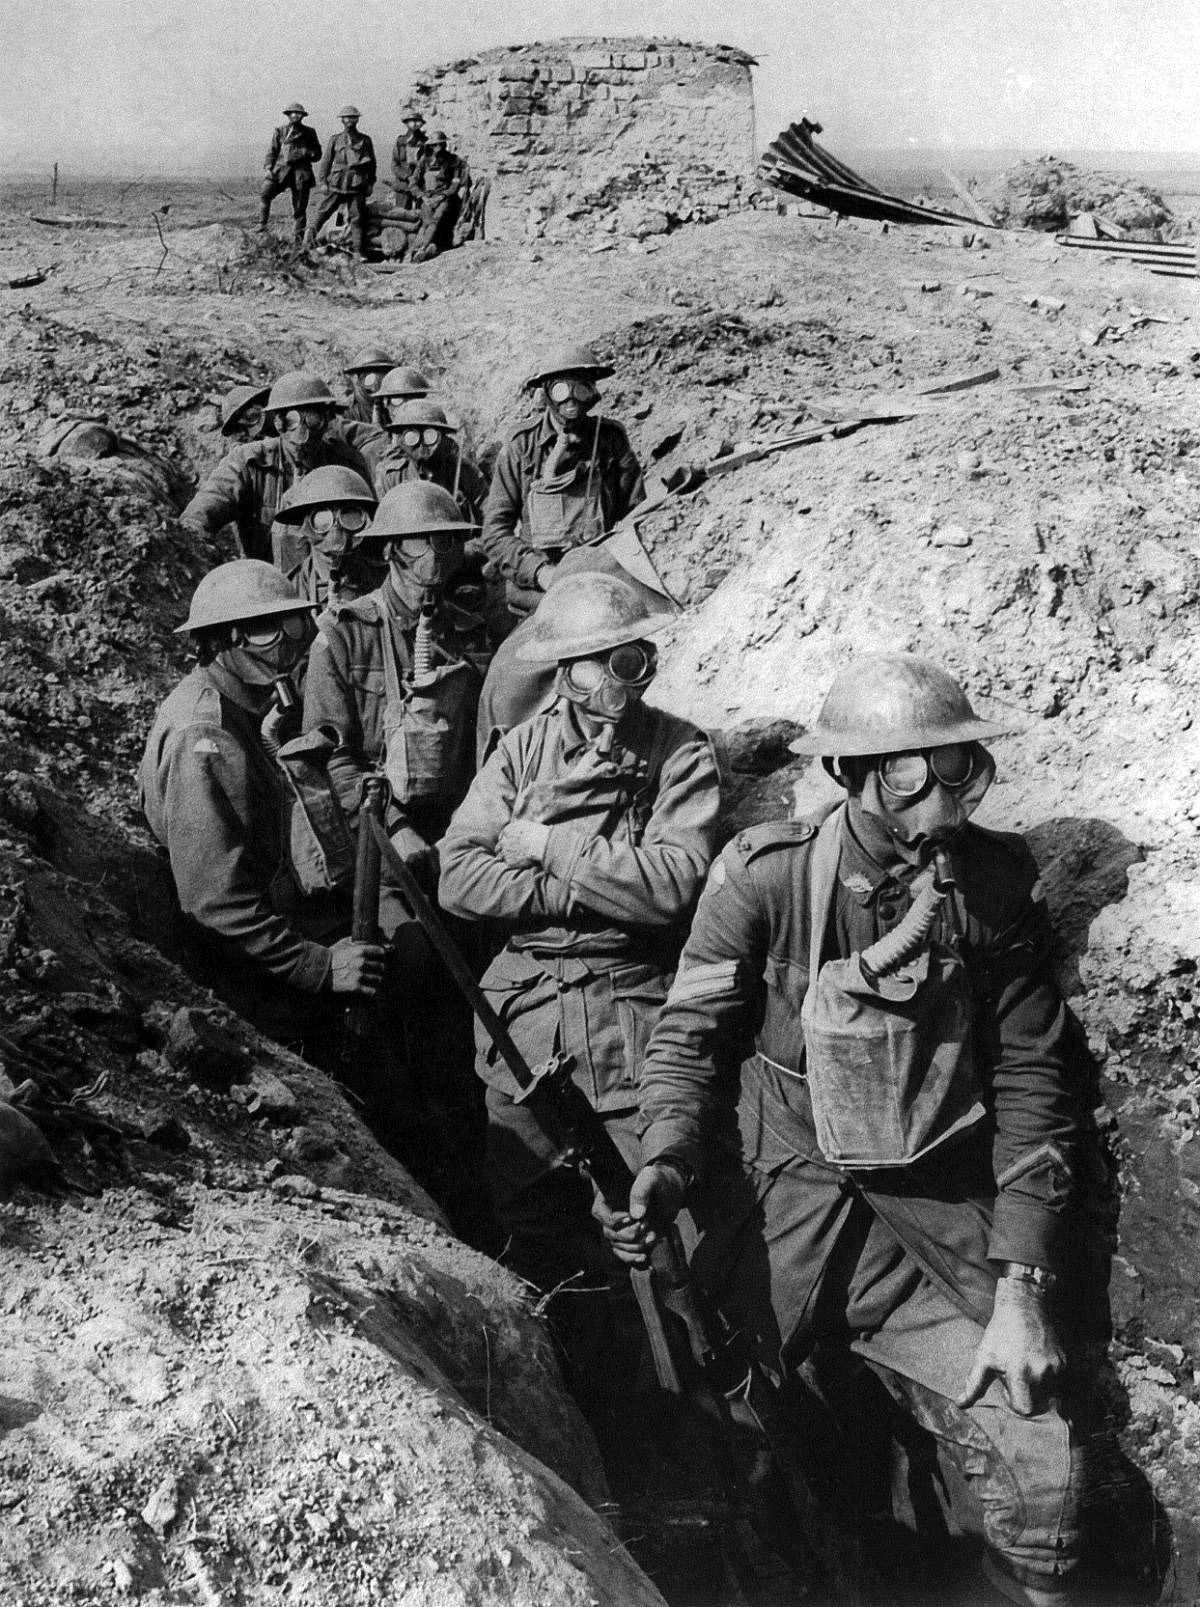 https://i1.wp.com/upload.wikimedia.org/wikipedia/commons/3/34/Australian_infantry_small_box_respirators_Ypres_1917.jpg